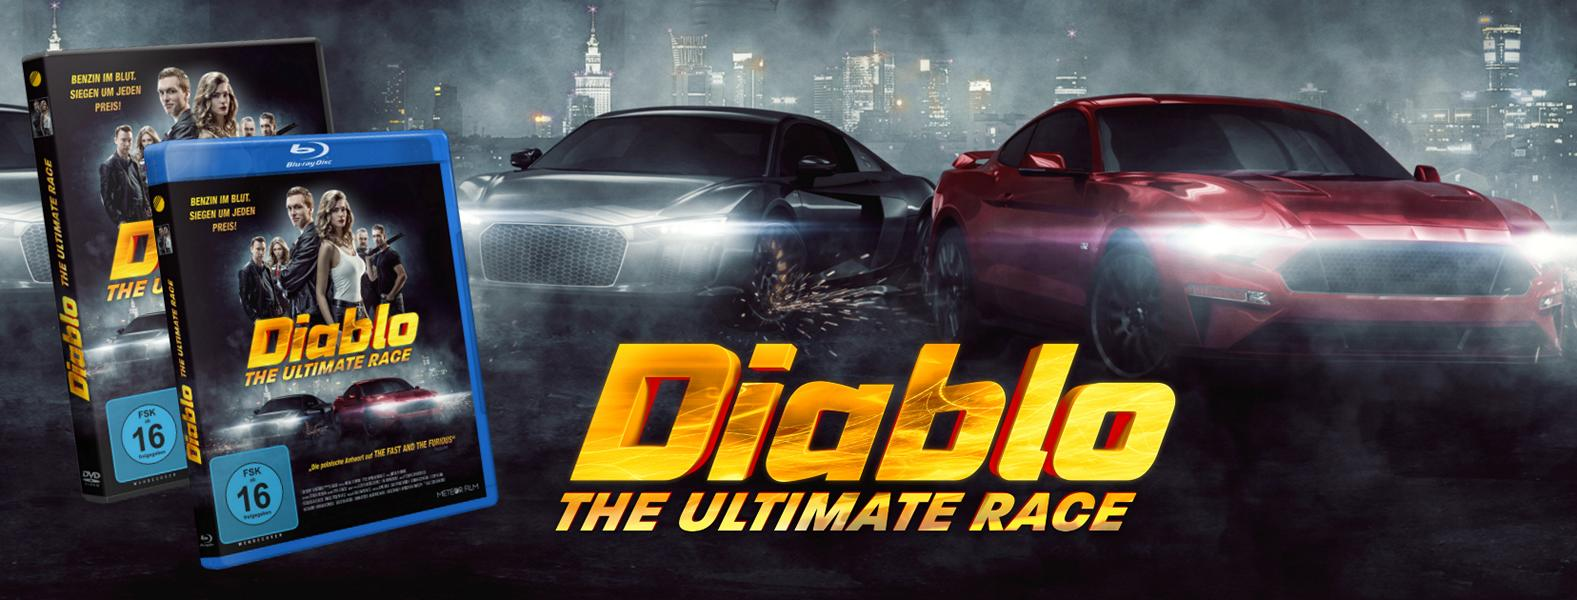 DIABLO %E2%80%93 The ultimate Race DVD Tuning 3 Action pur: DIABLO – The ultimate Race jetzt auf DVD!